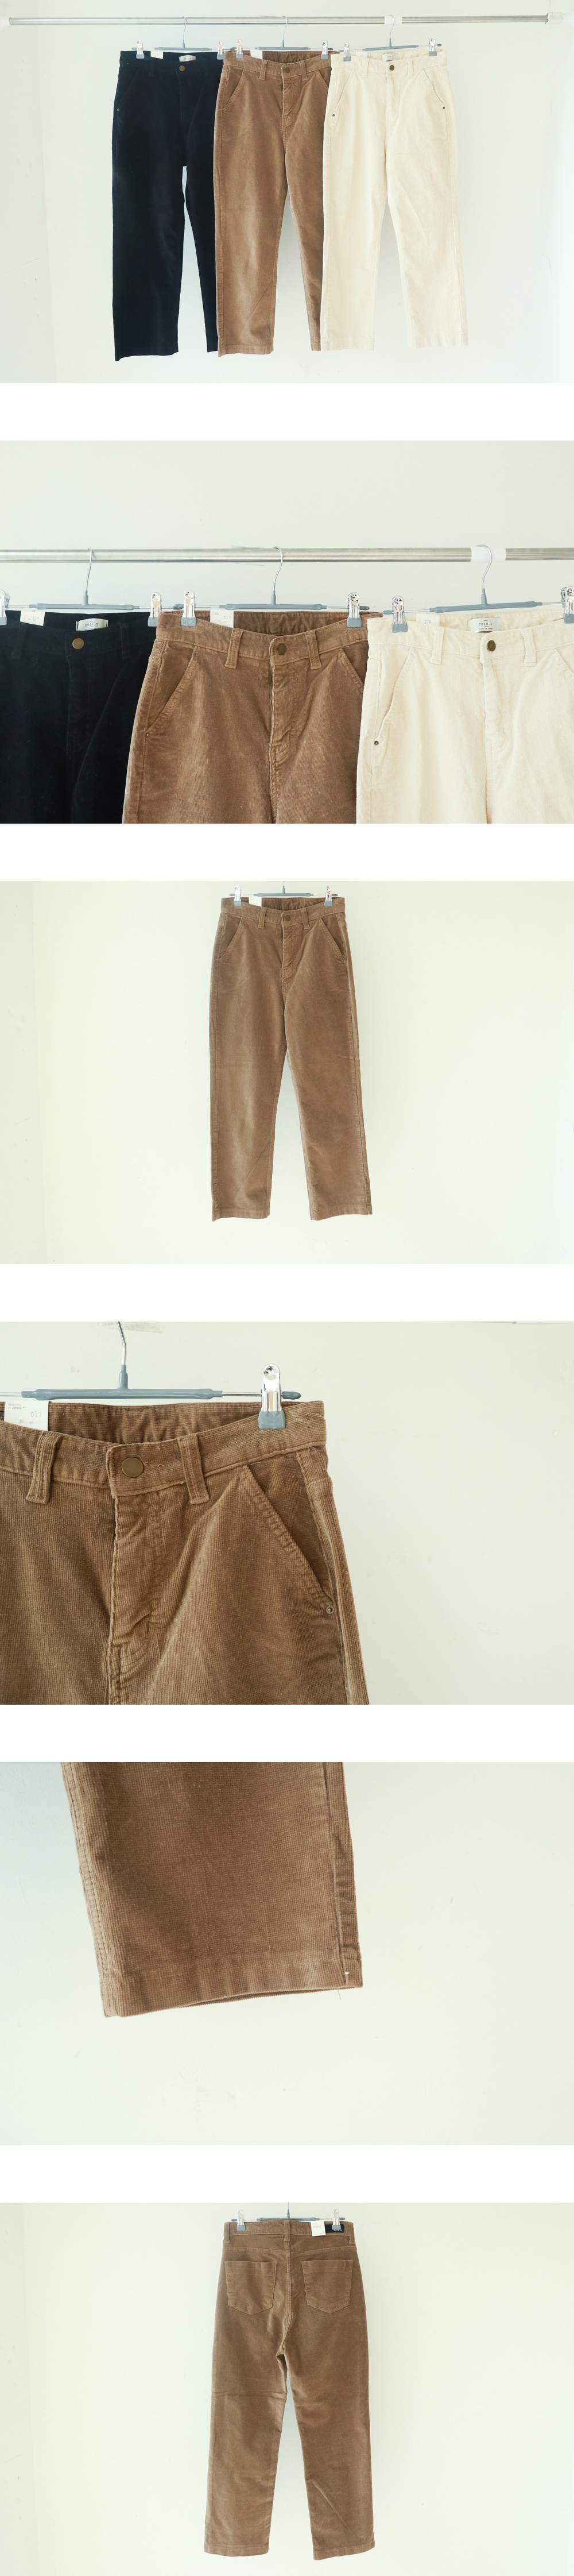 077 corduroy straight pants